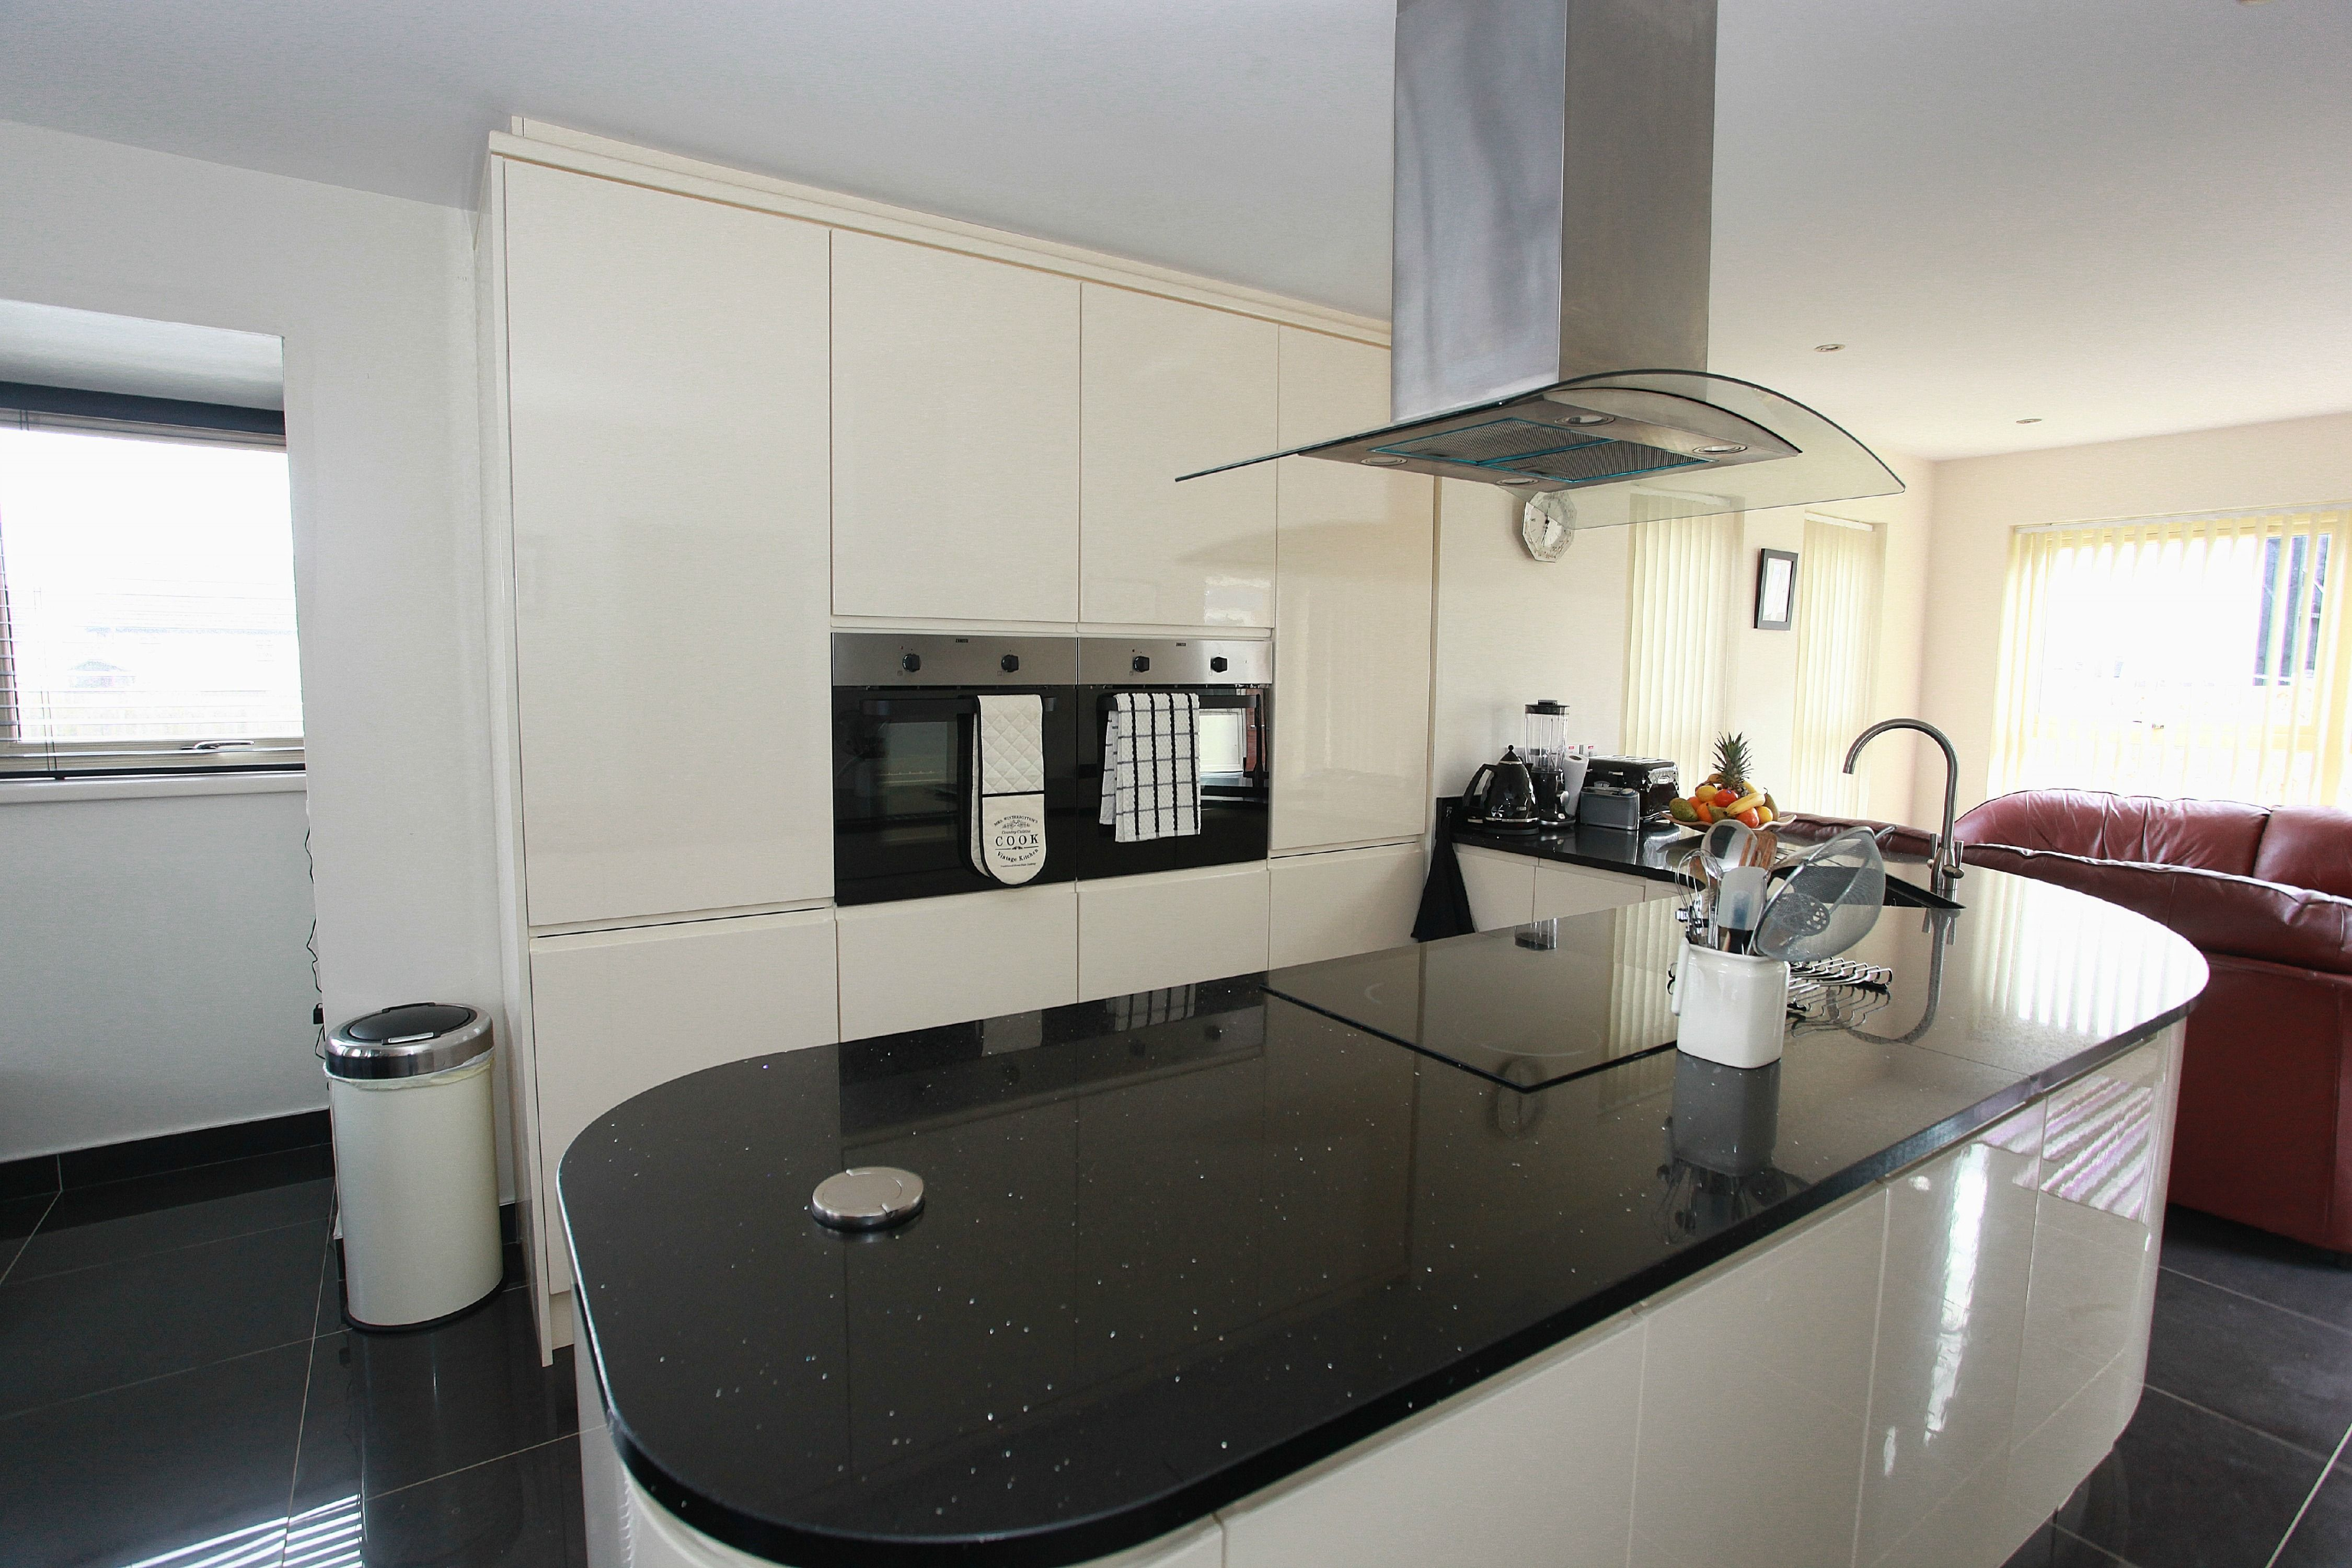 Detached House Kitchen by Kitchens Direct NI at Portland